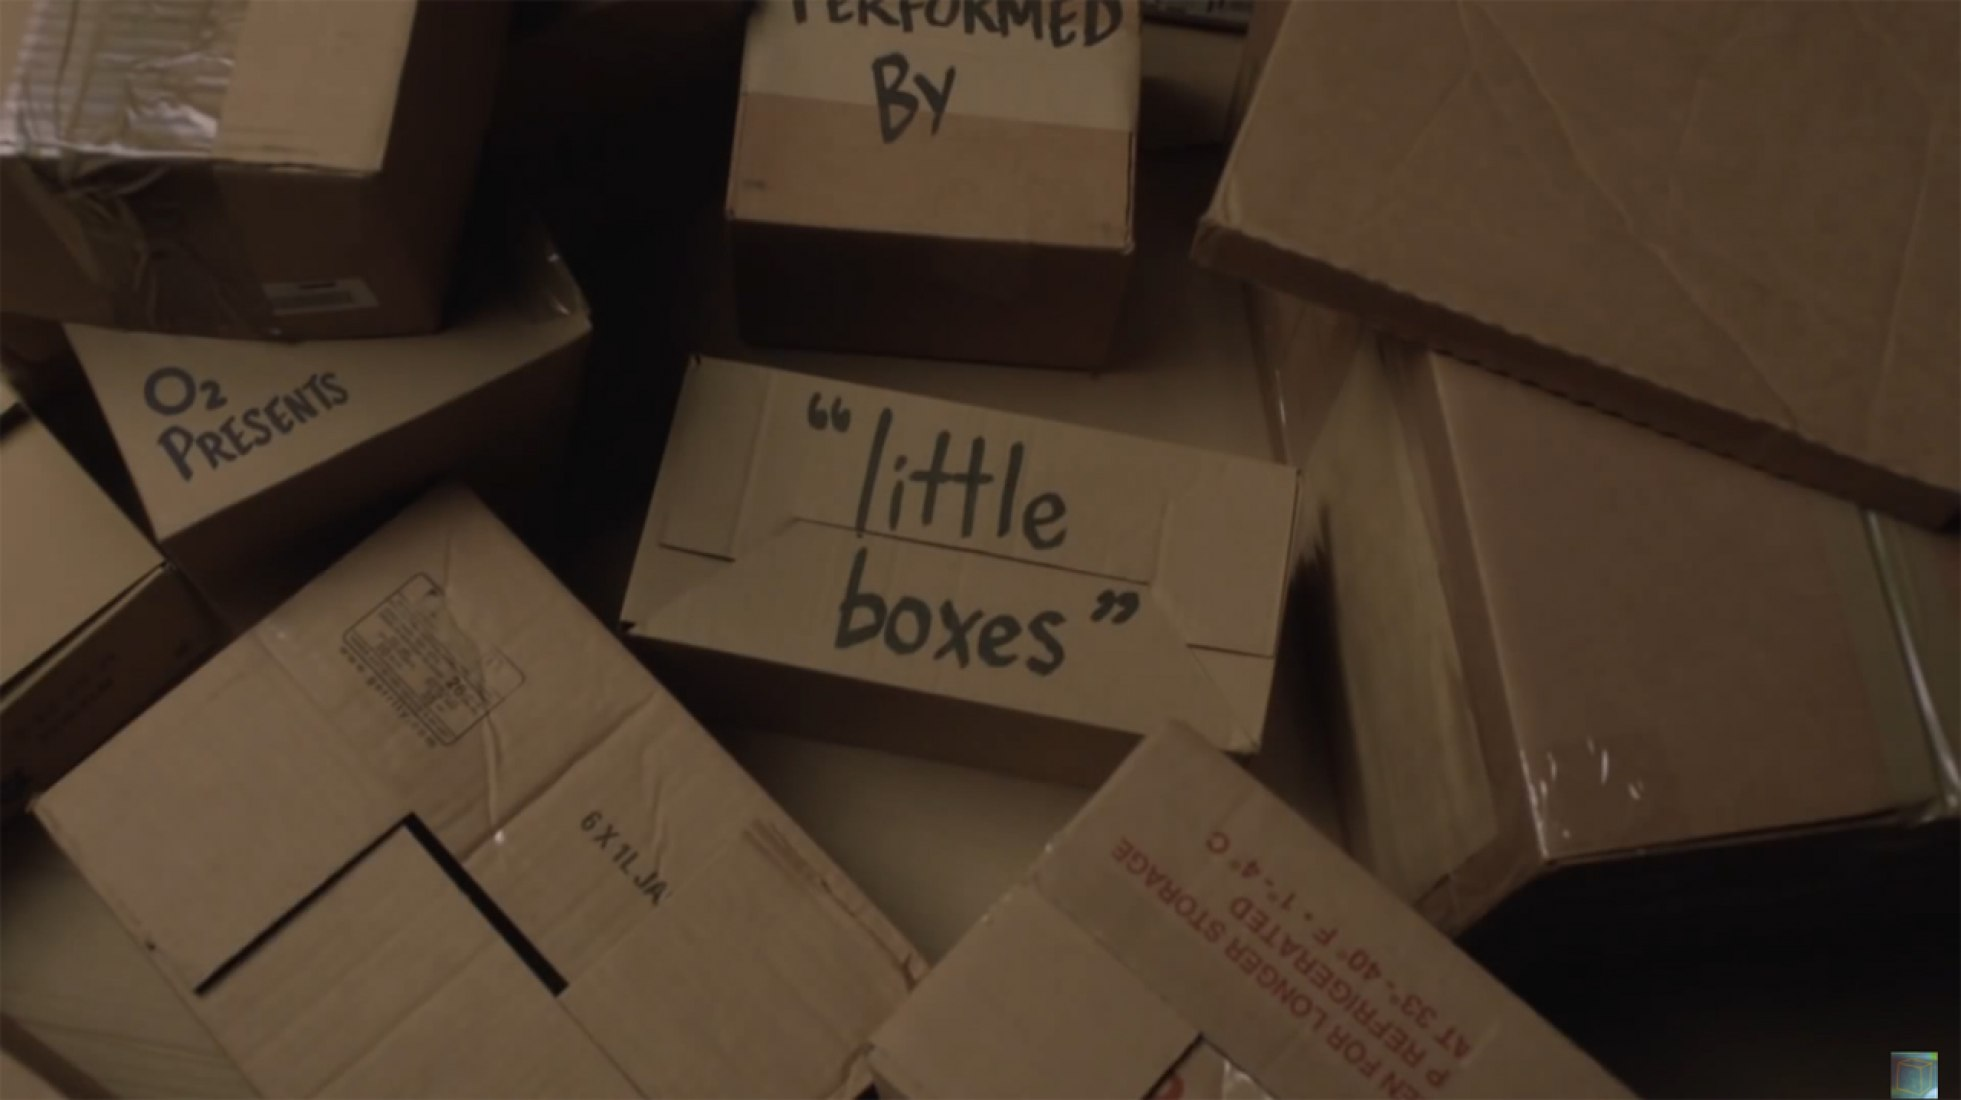 Video screenshot. Little Boxes by Walk off the Earth.